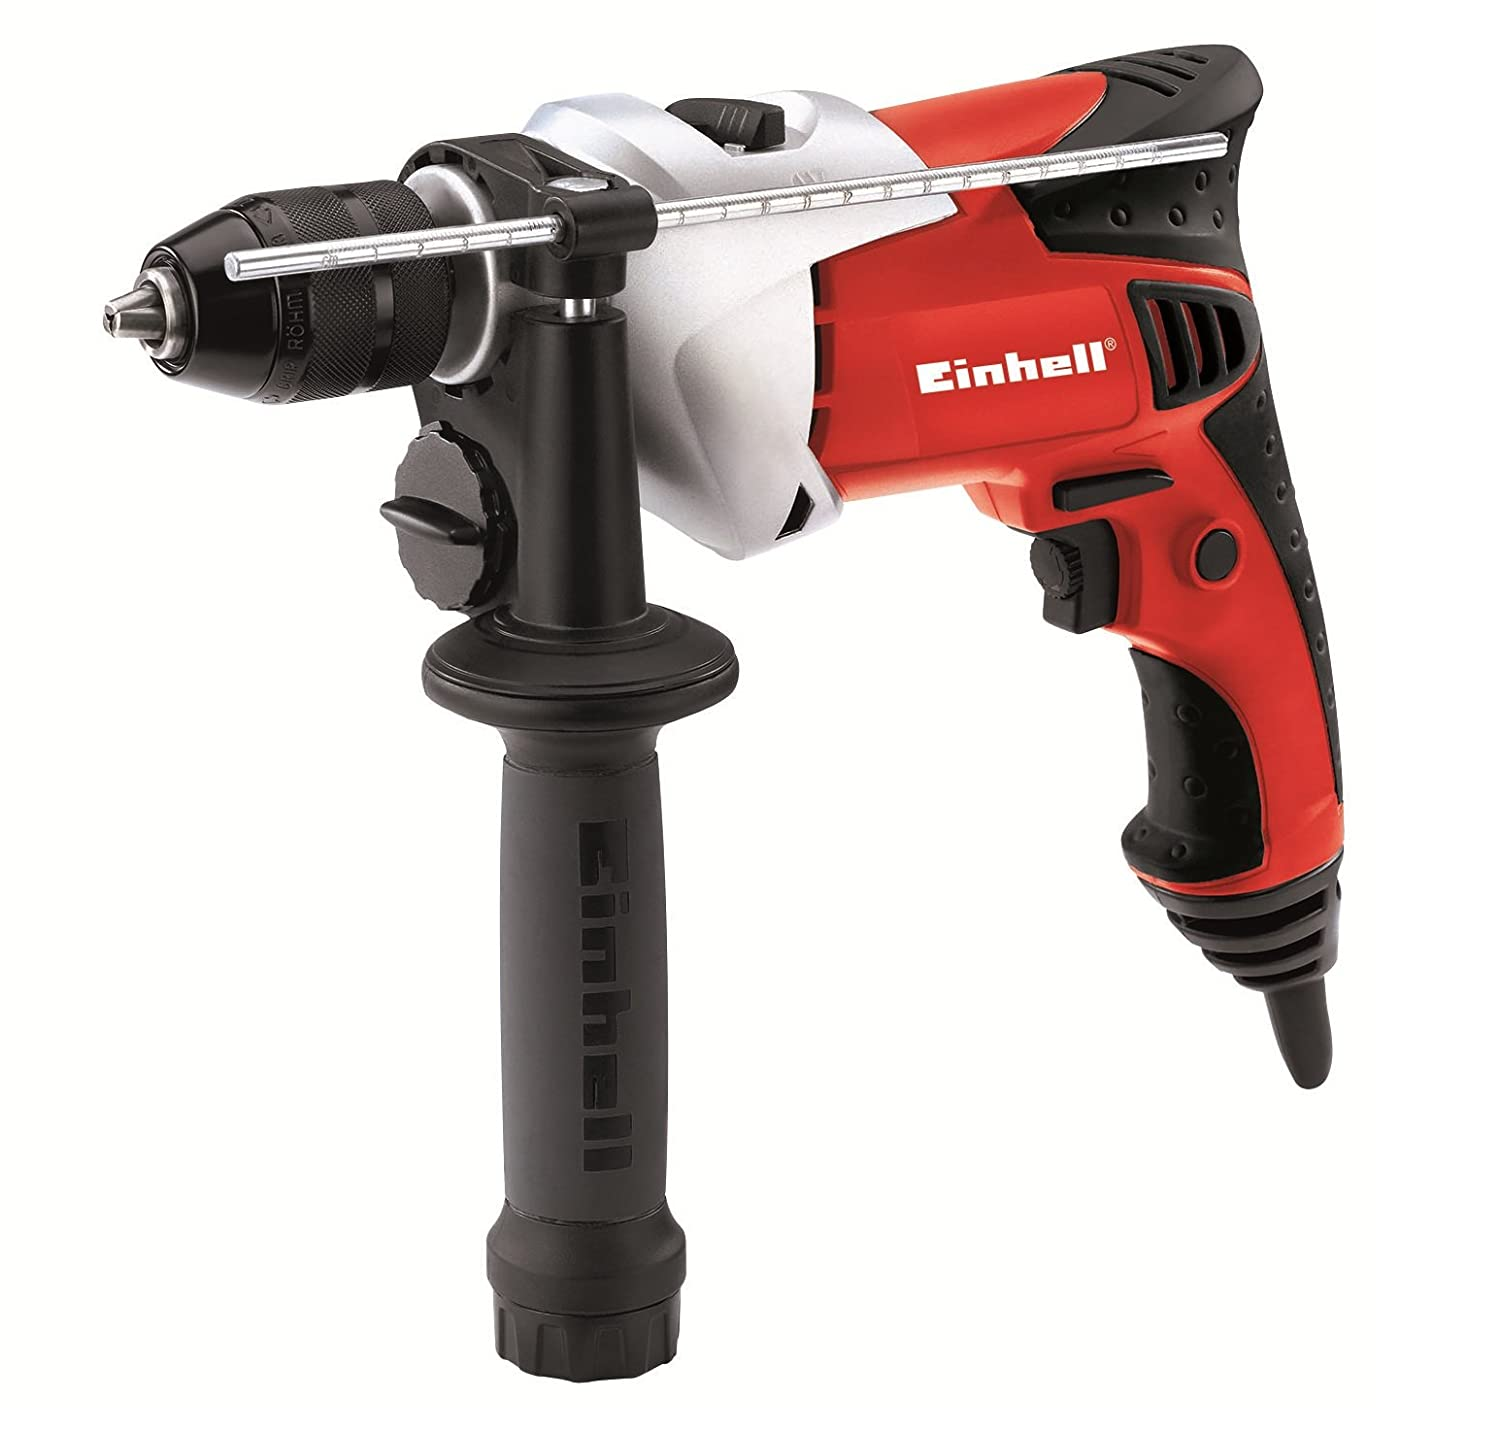 Einhell RT-ID 75 Perceuse à percussion EINRTID75